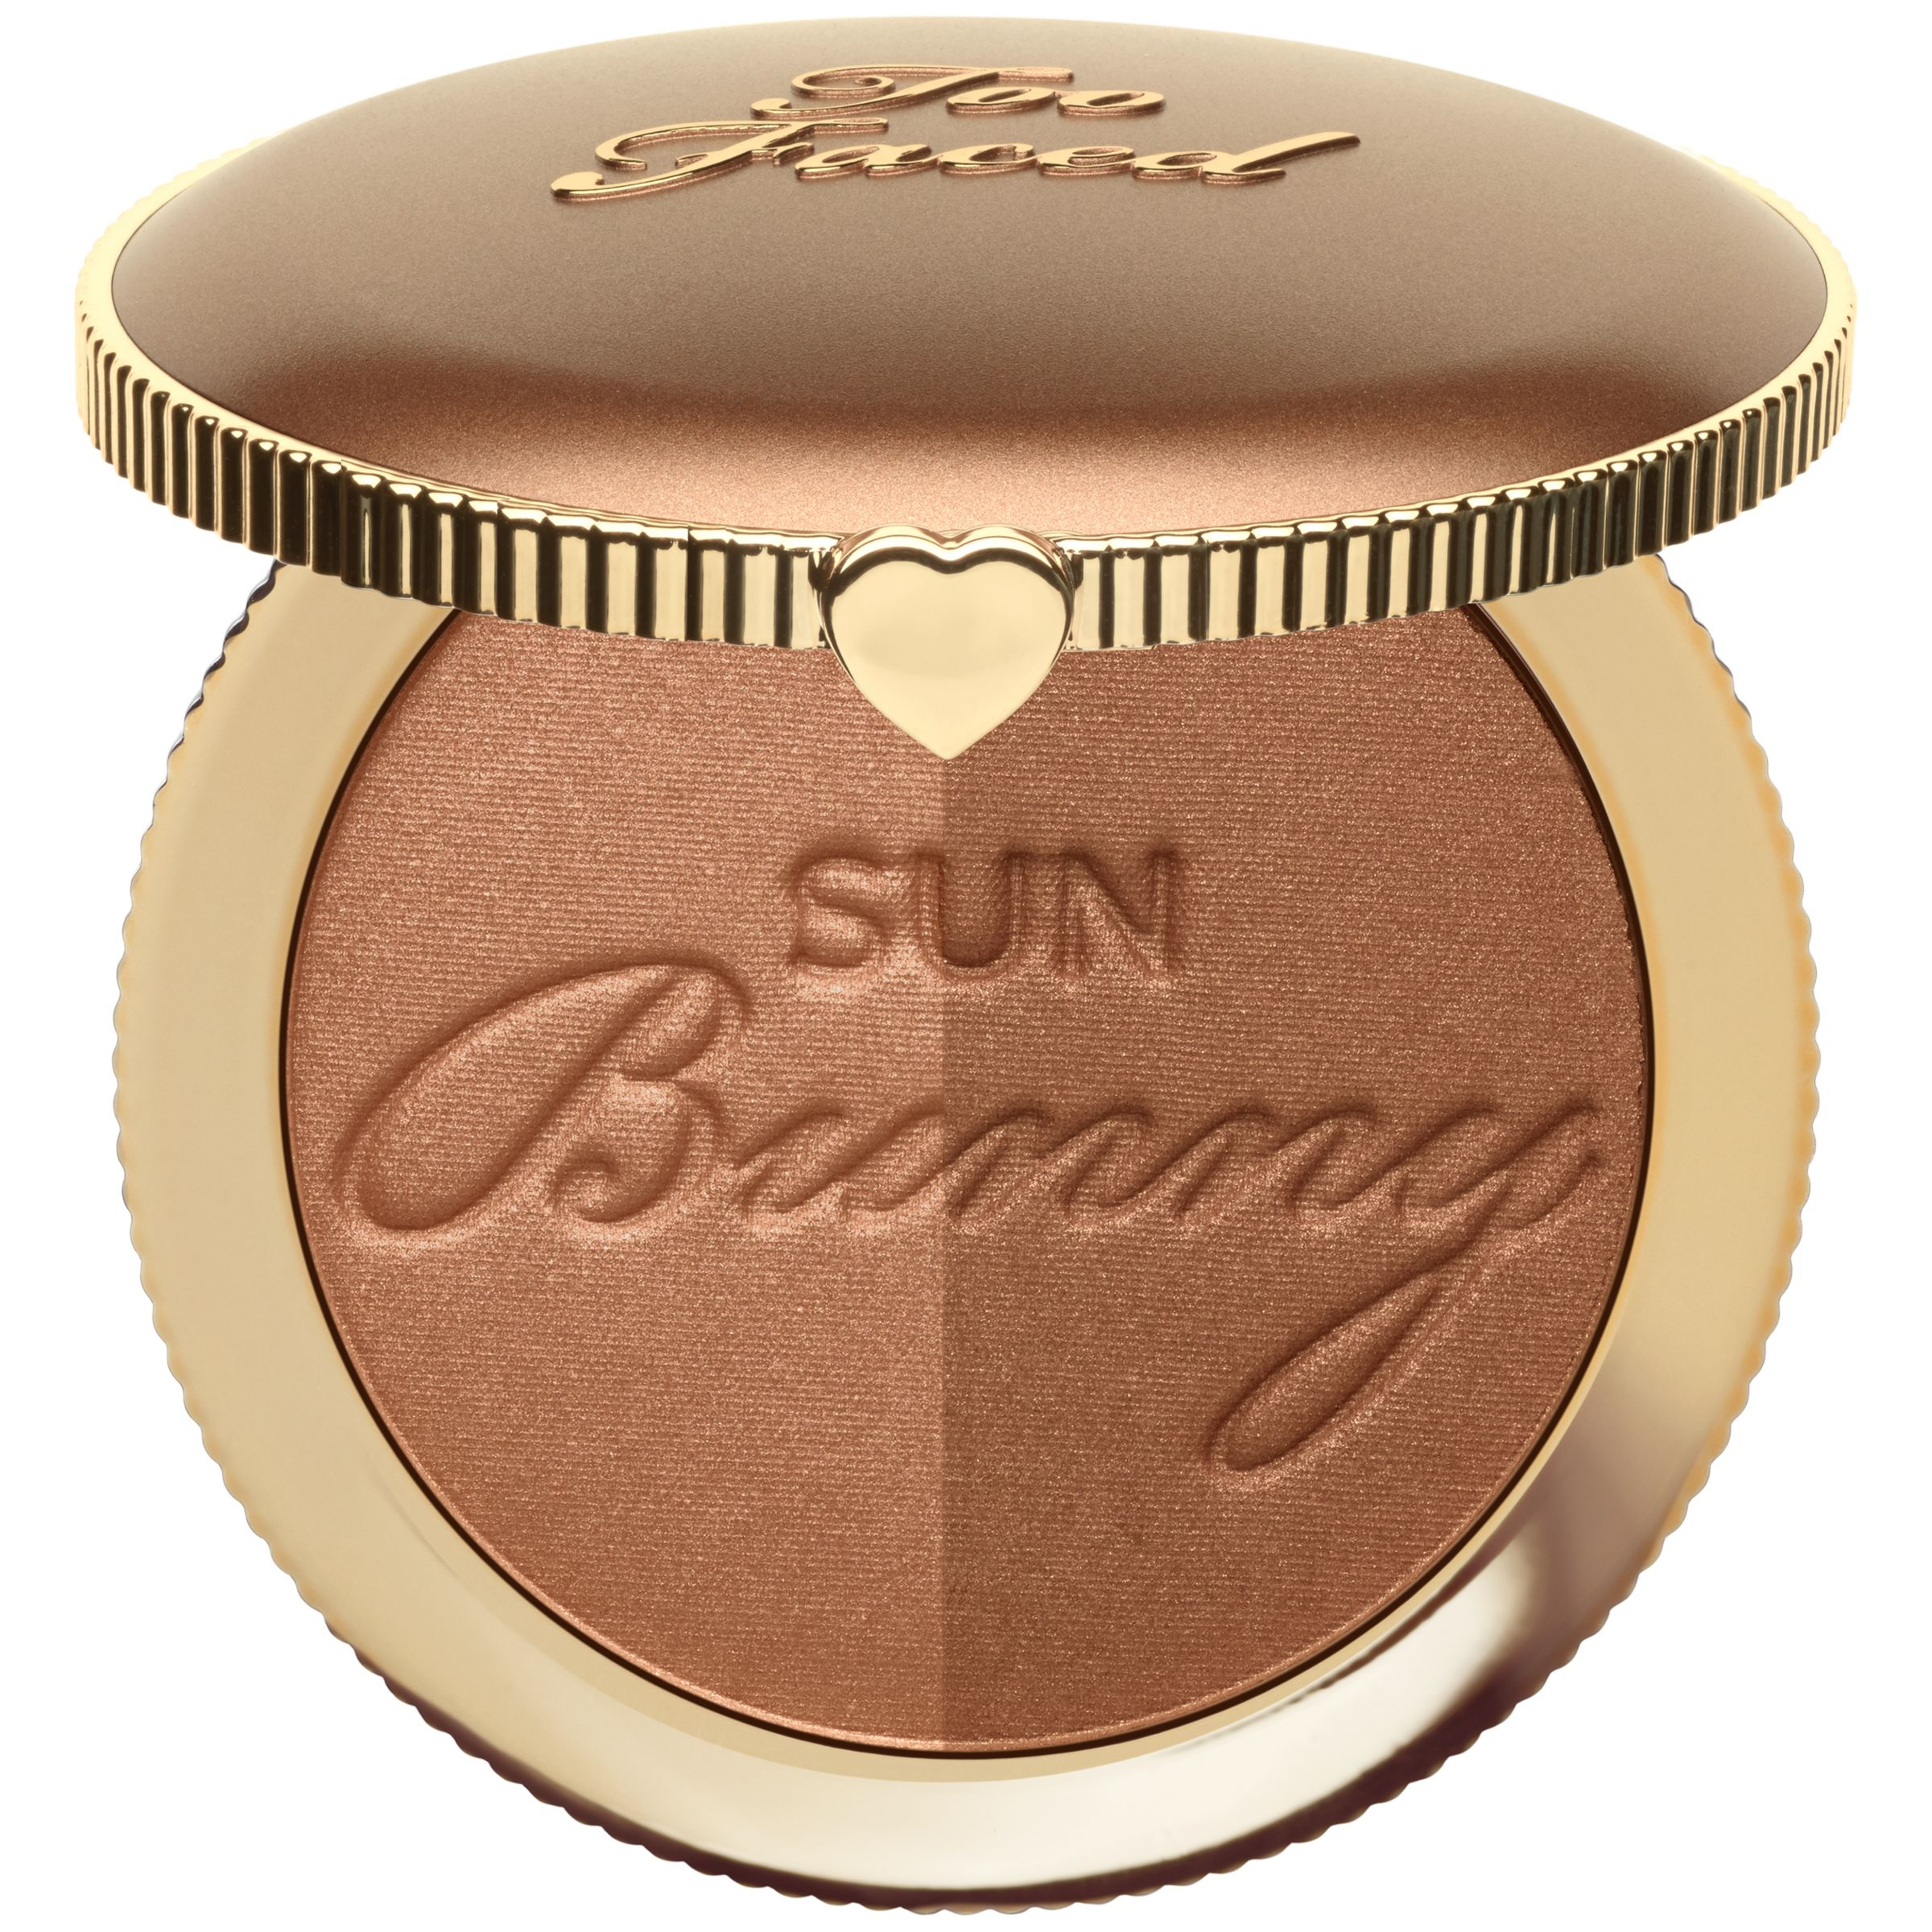 Too Faced Too Faced Sun Bunny Natural Bronzer